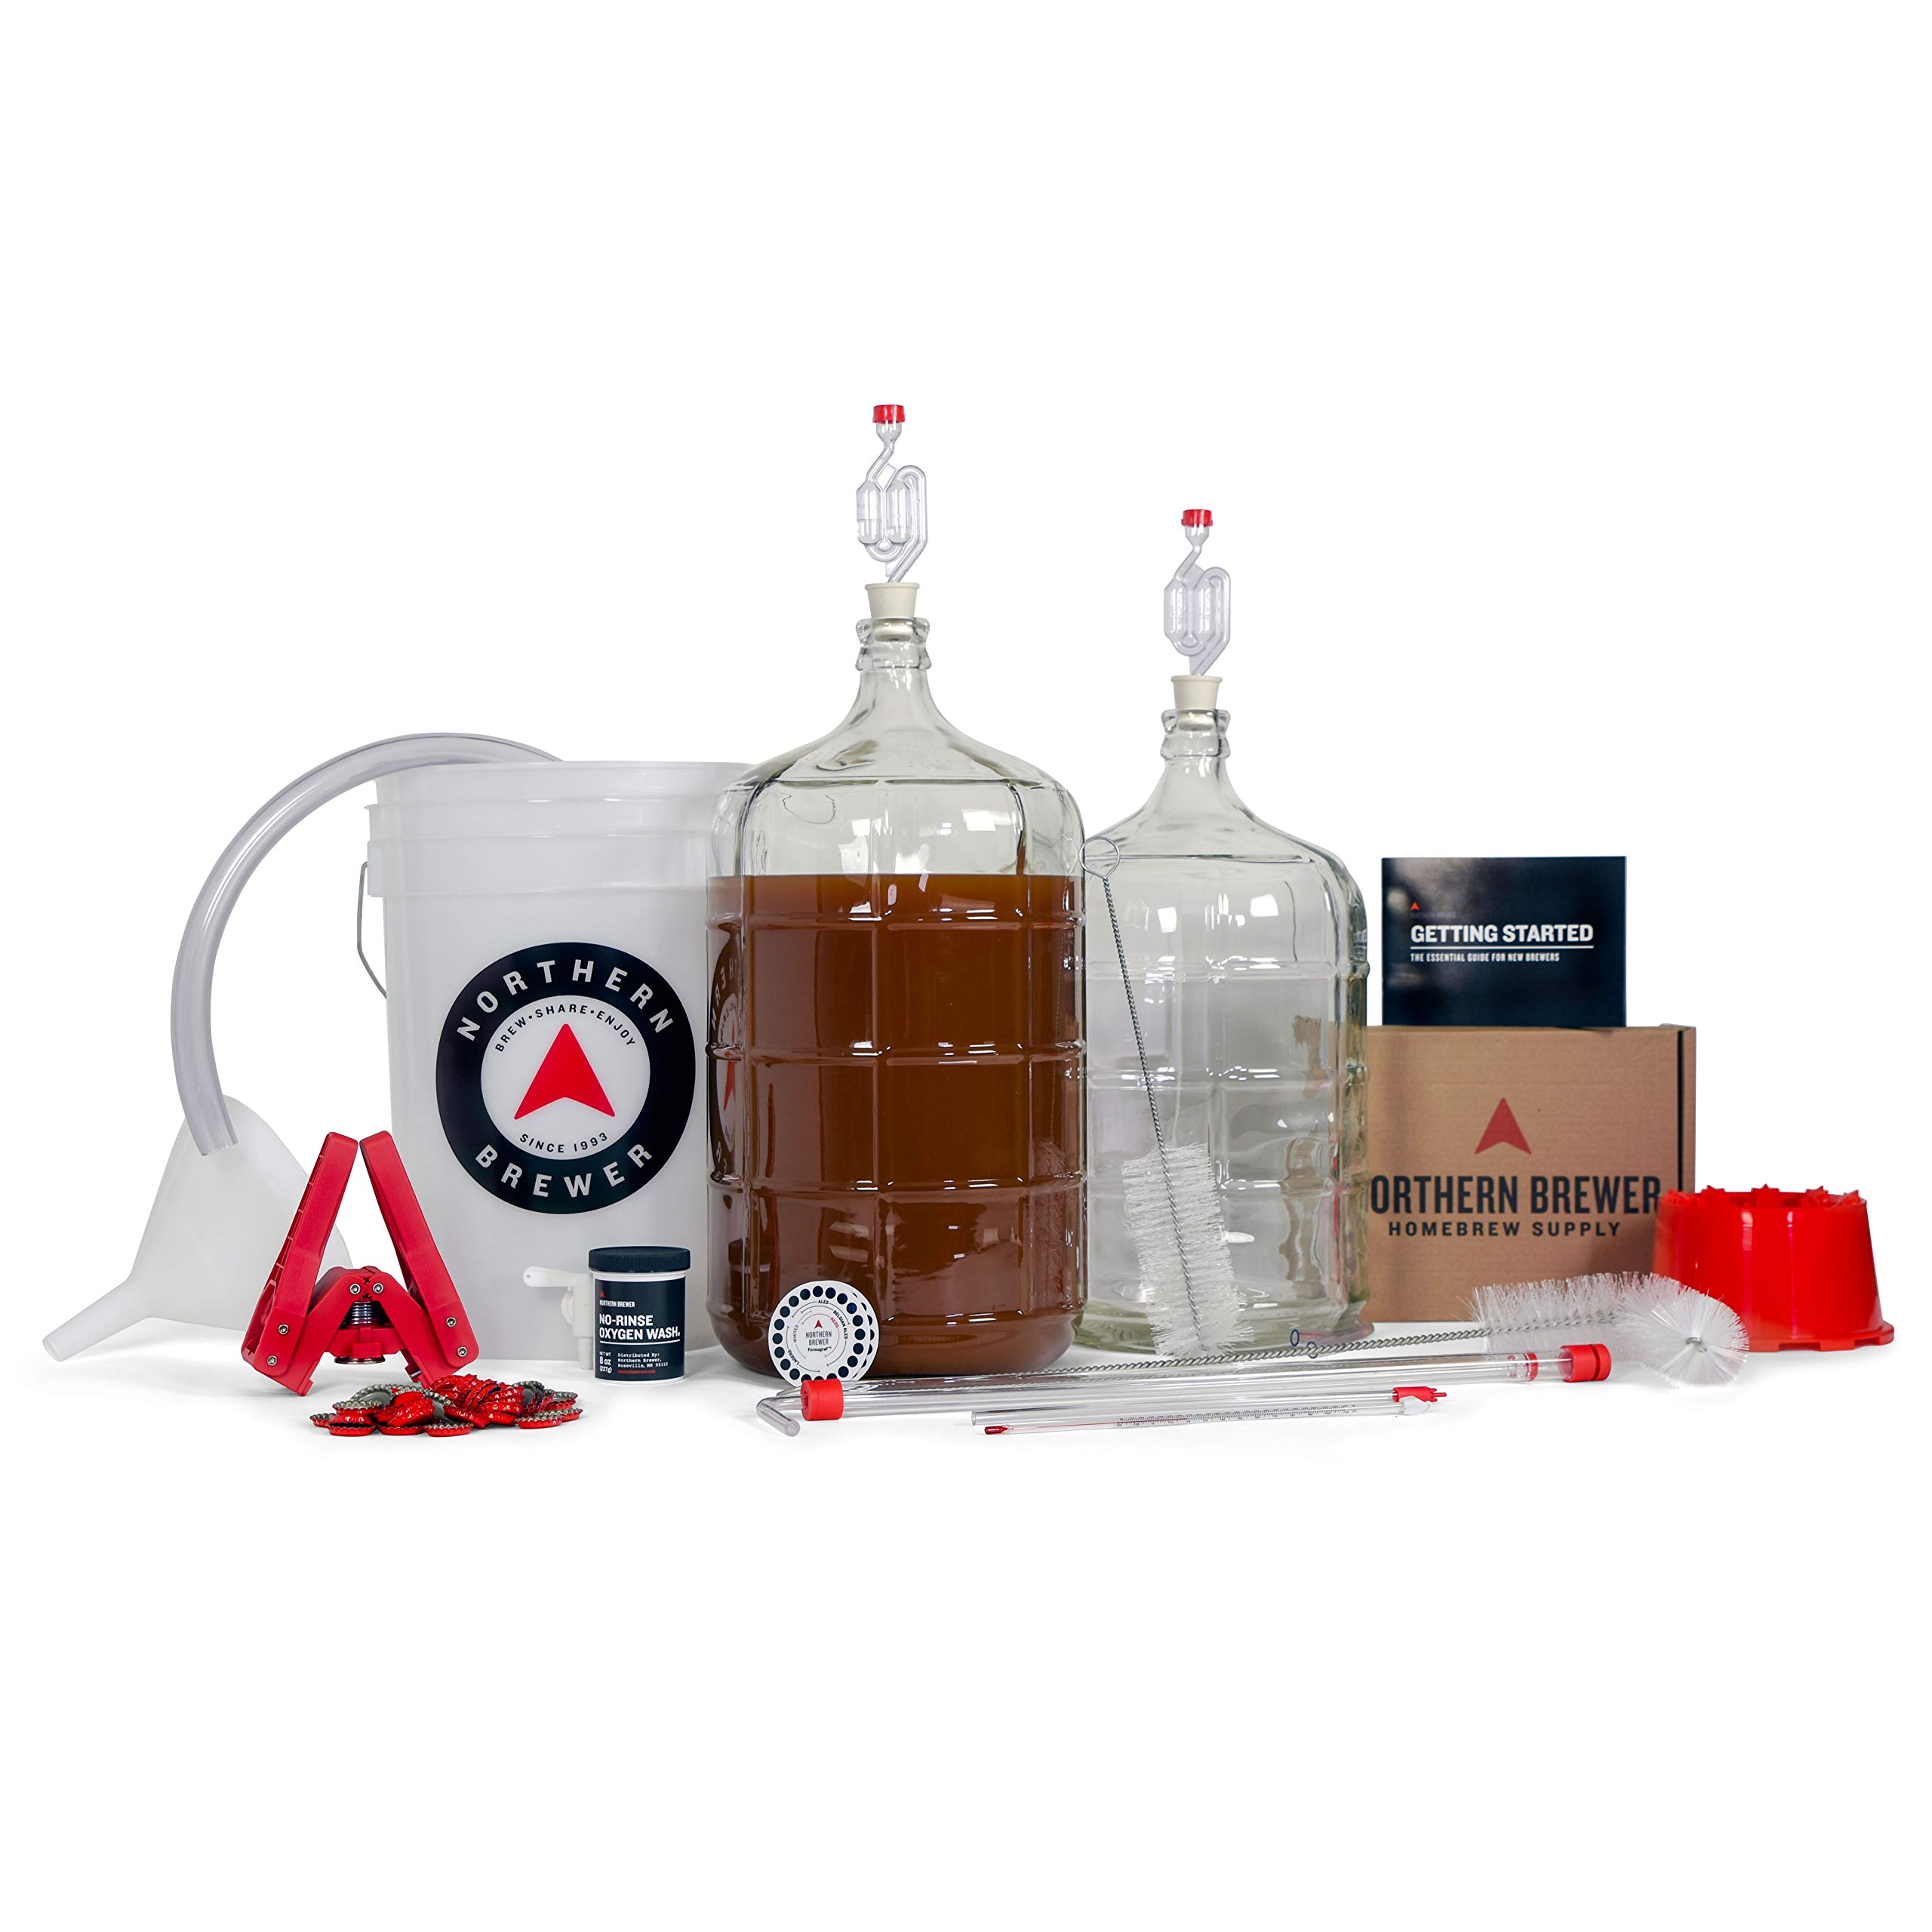 Northern Brewer Deluxe Home Brewing Equipment Starter Kit - Fresh Squished IPA Beer Recipe Kit - Glass Carboys Fermenter with Equipment For Making 5 Gallons Of Homemade Beer by Northern Brewer (Image #7)